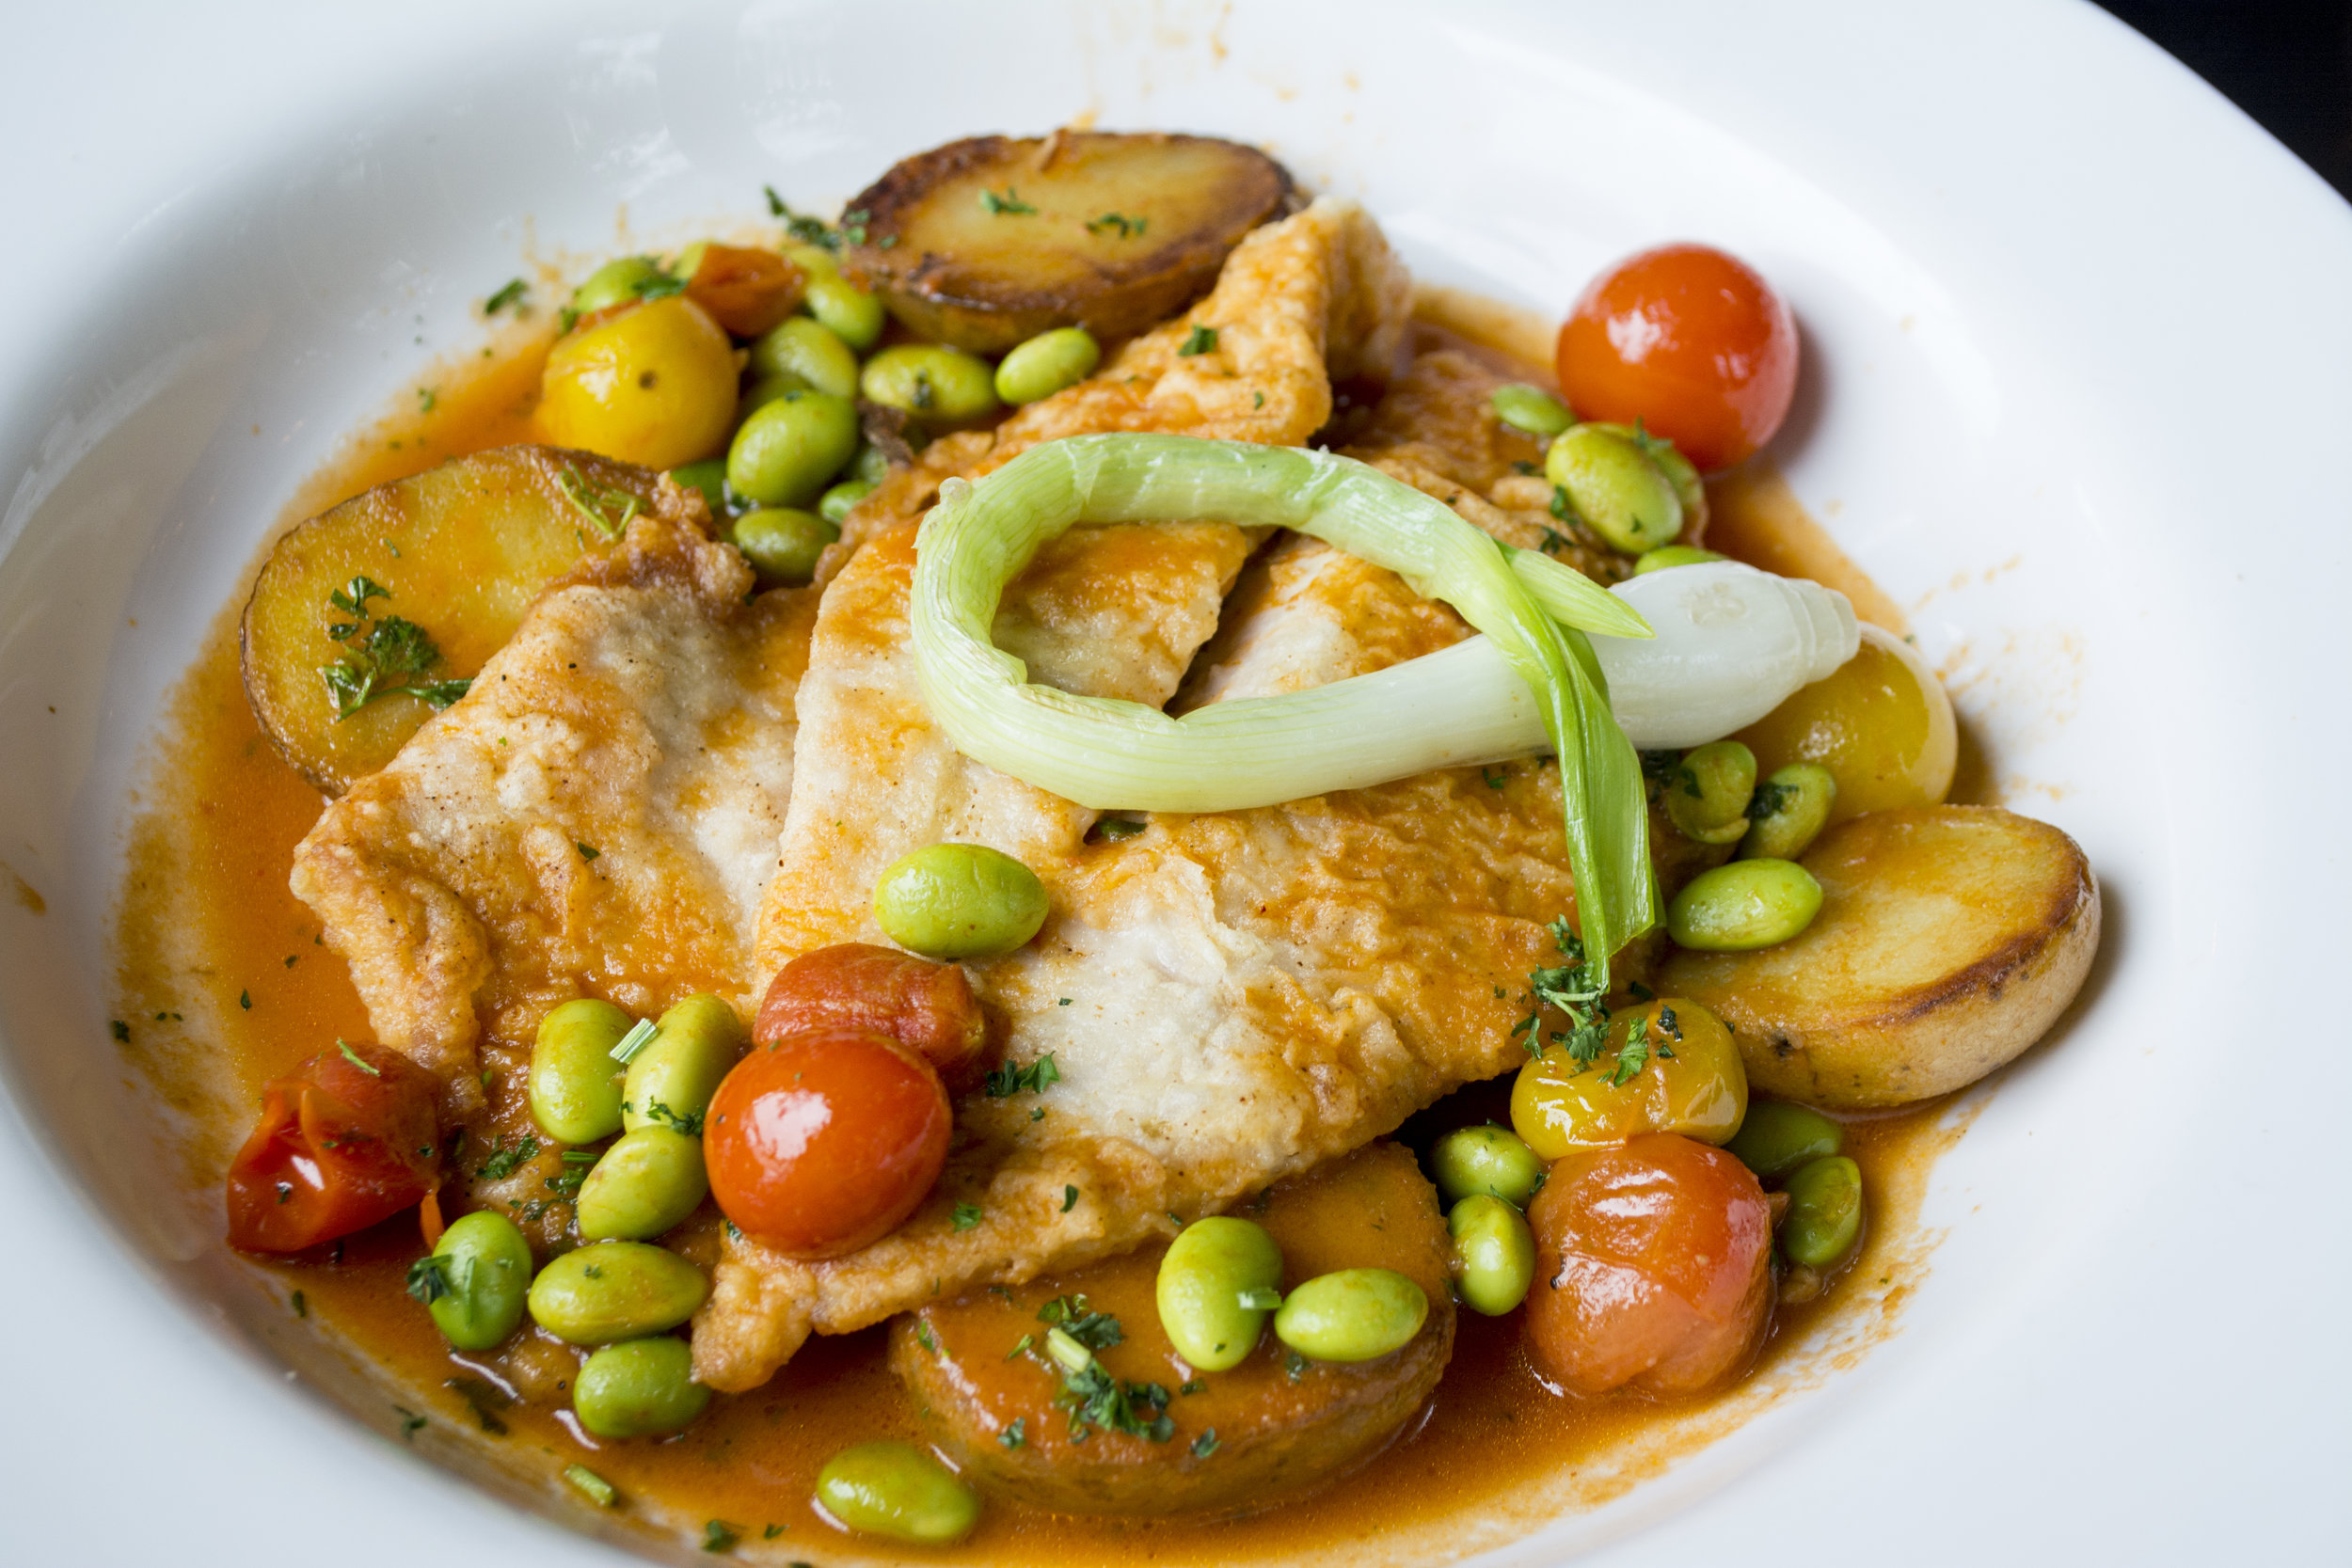 Local John Dory ($24) is served with yellow finn potatoes, baby spring onion, edamame and tomato broth.